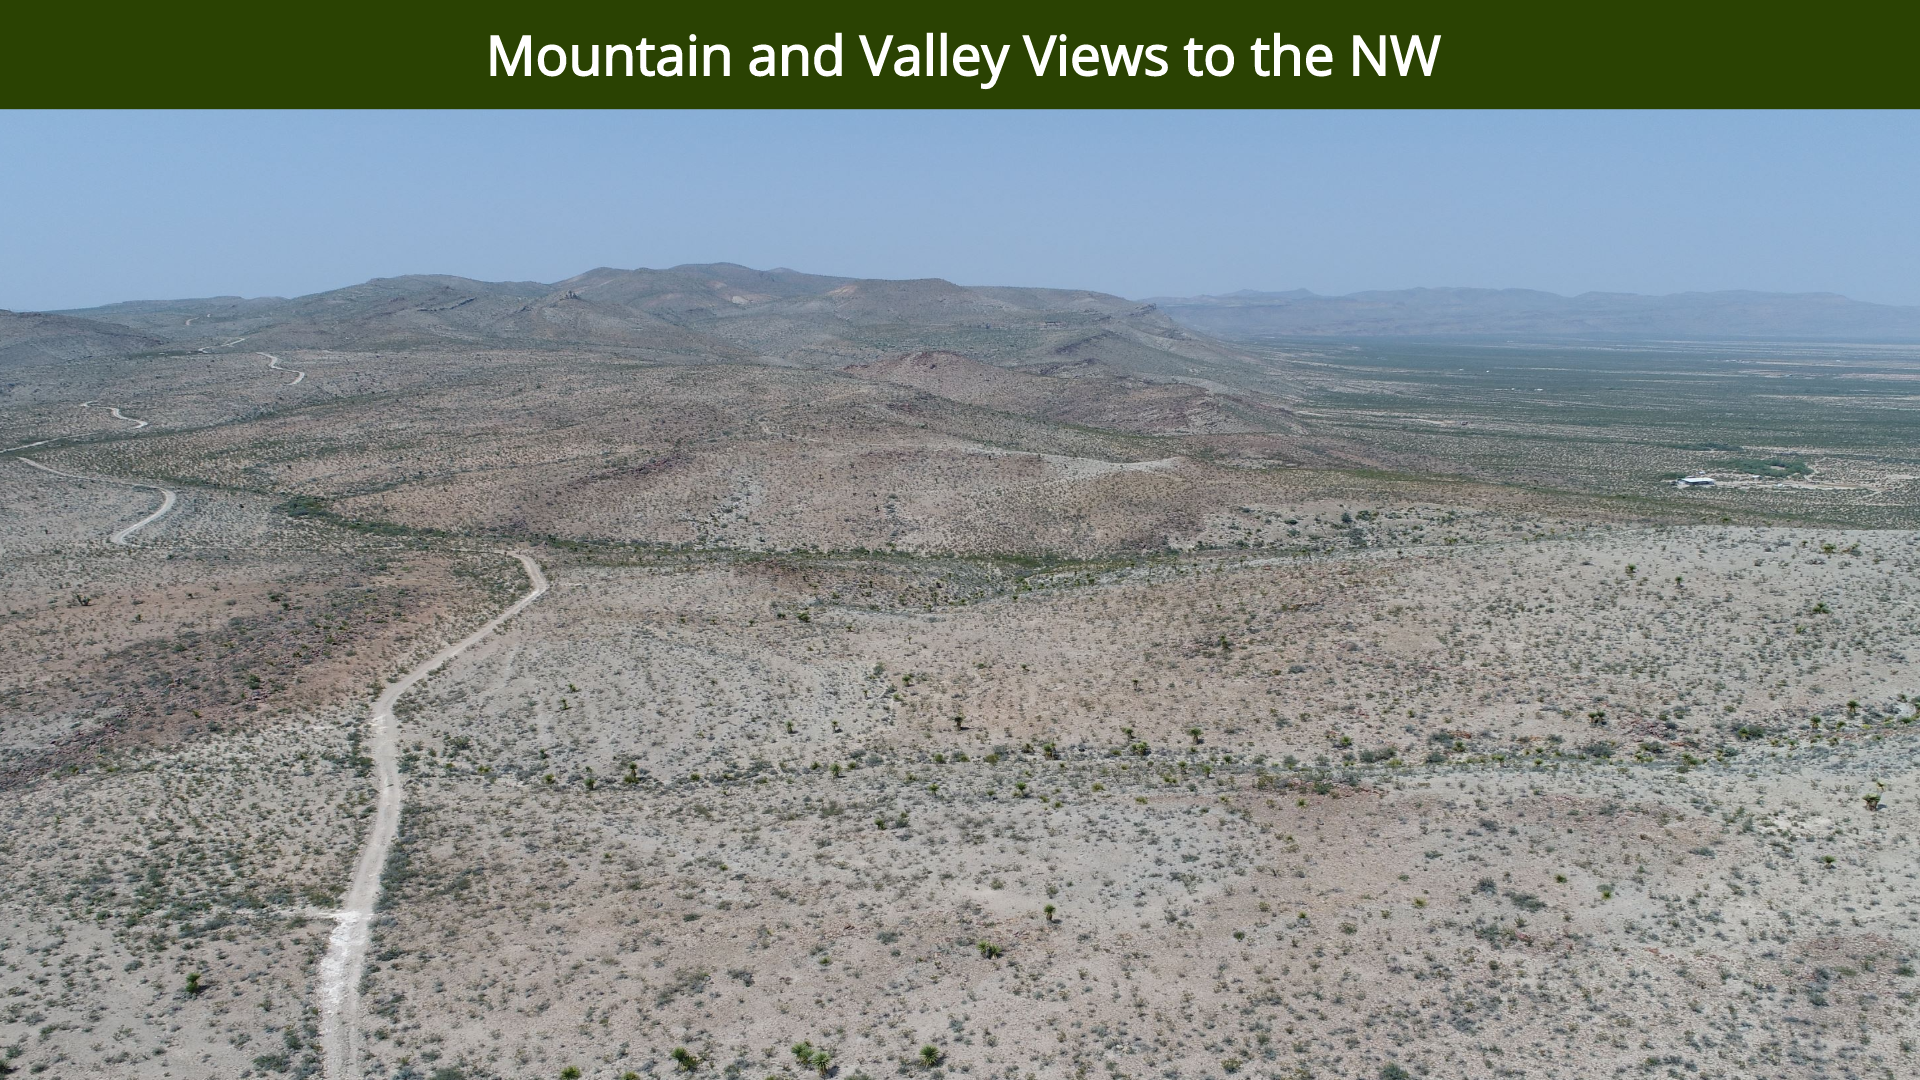 Mountain and Valley Views to the NW